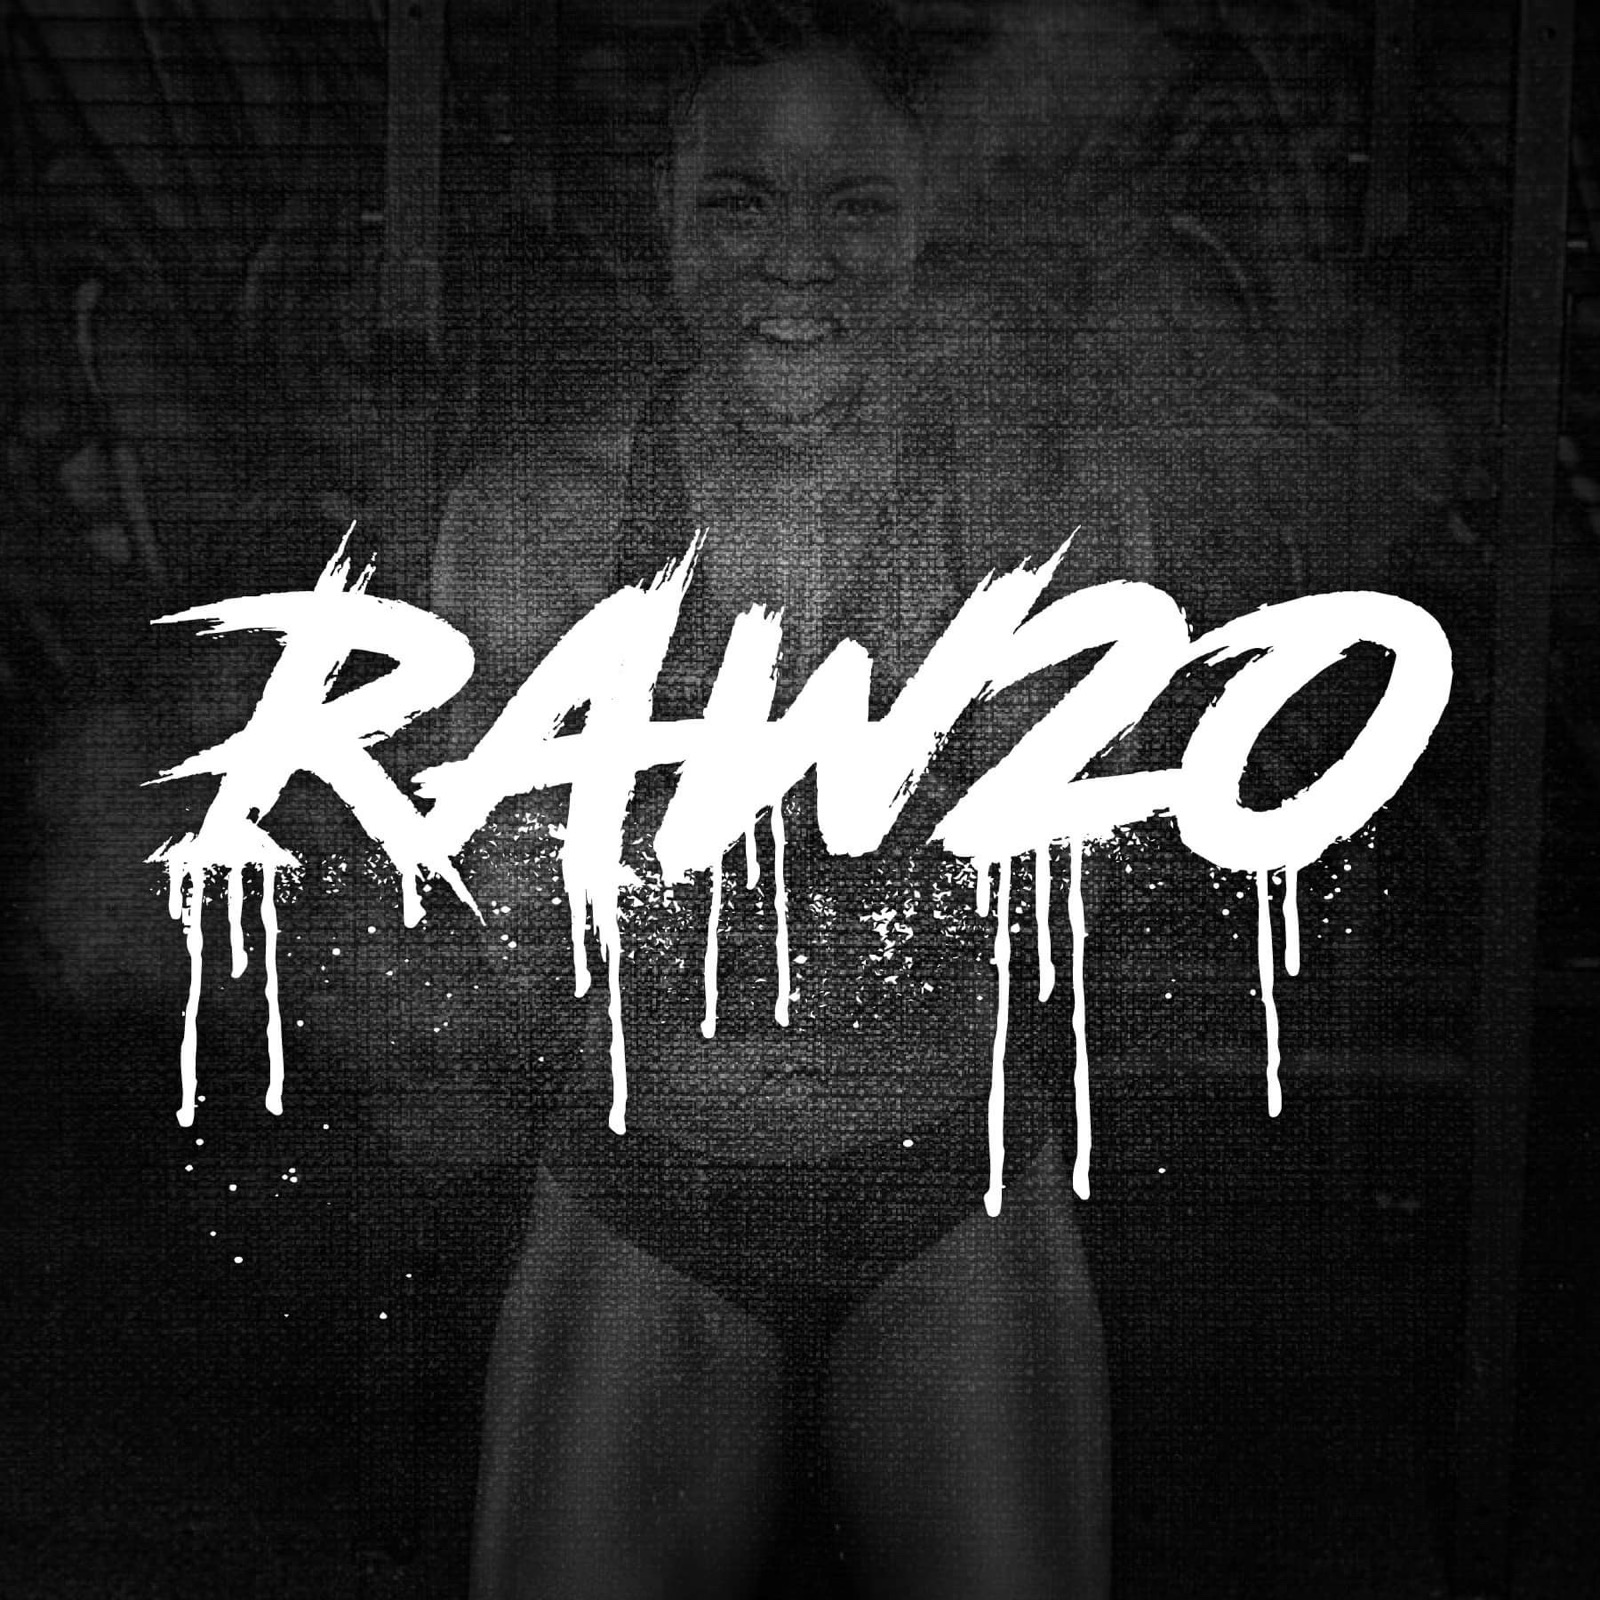 Join RAW20 Today! 20 min. Weekly workouts, Form/Nutrition Tips, RAW Challenges and more… -